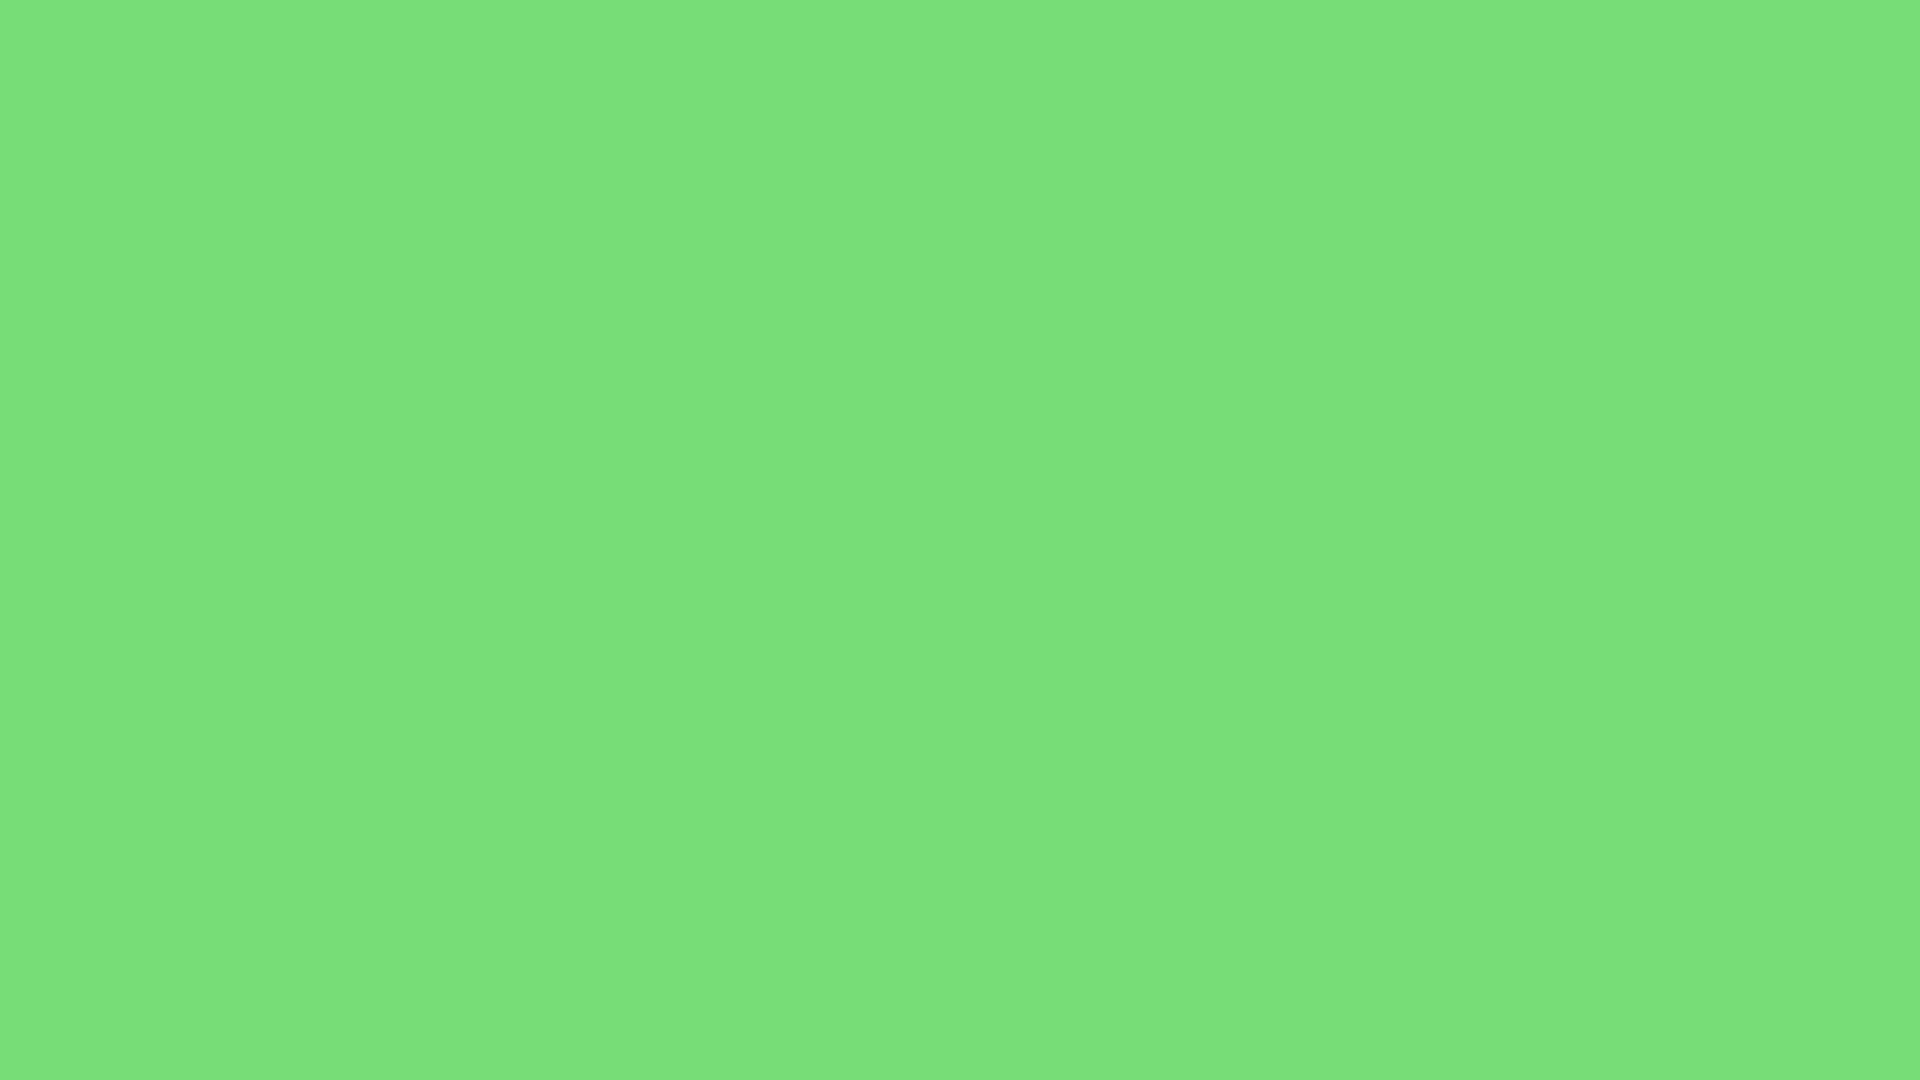 1920x1080 Pastel Green Solid Color Background